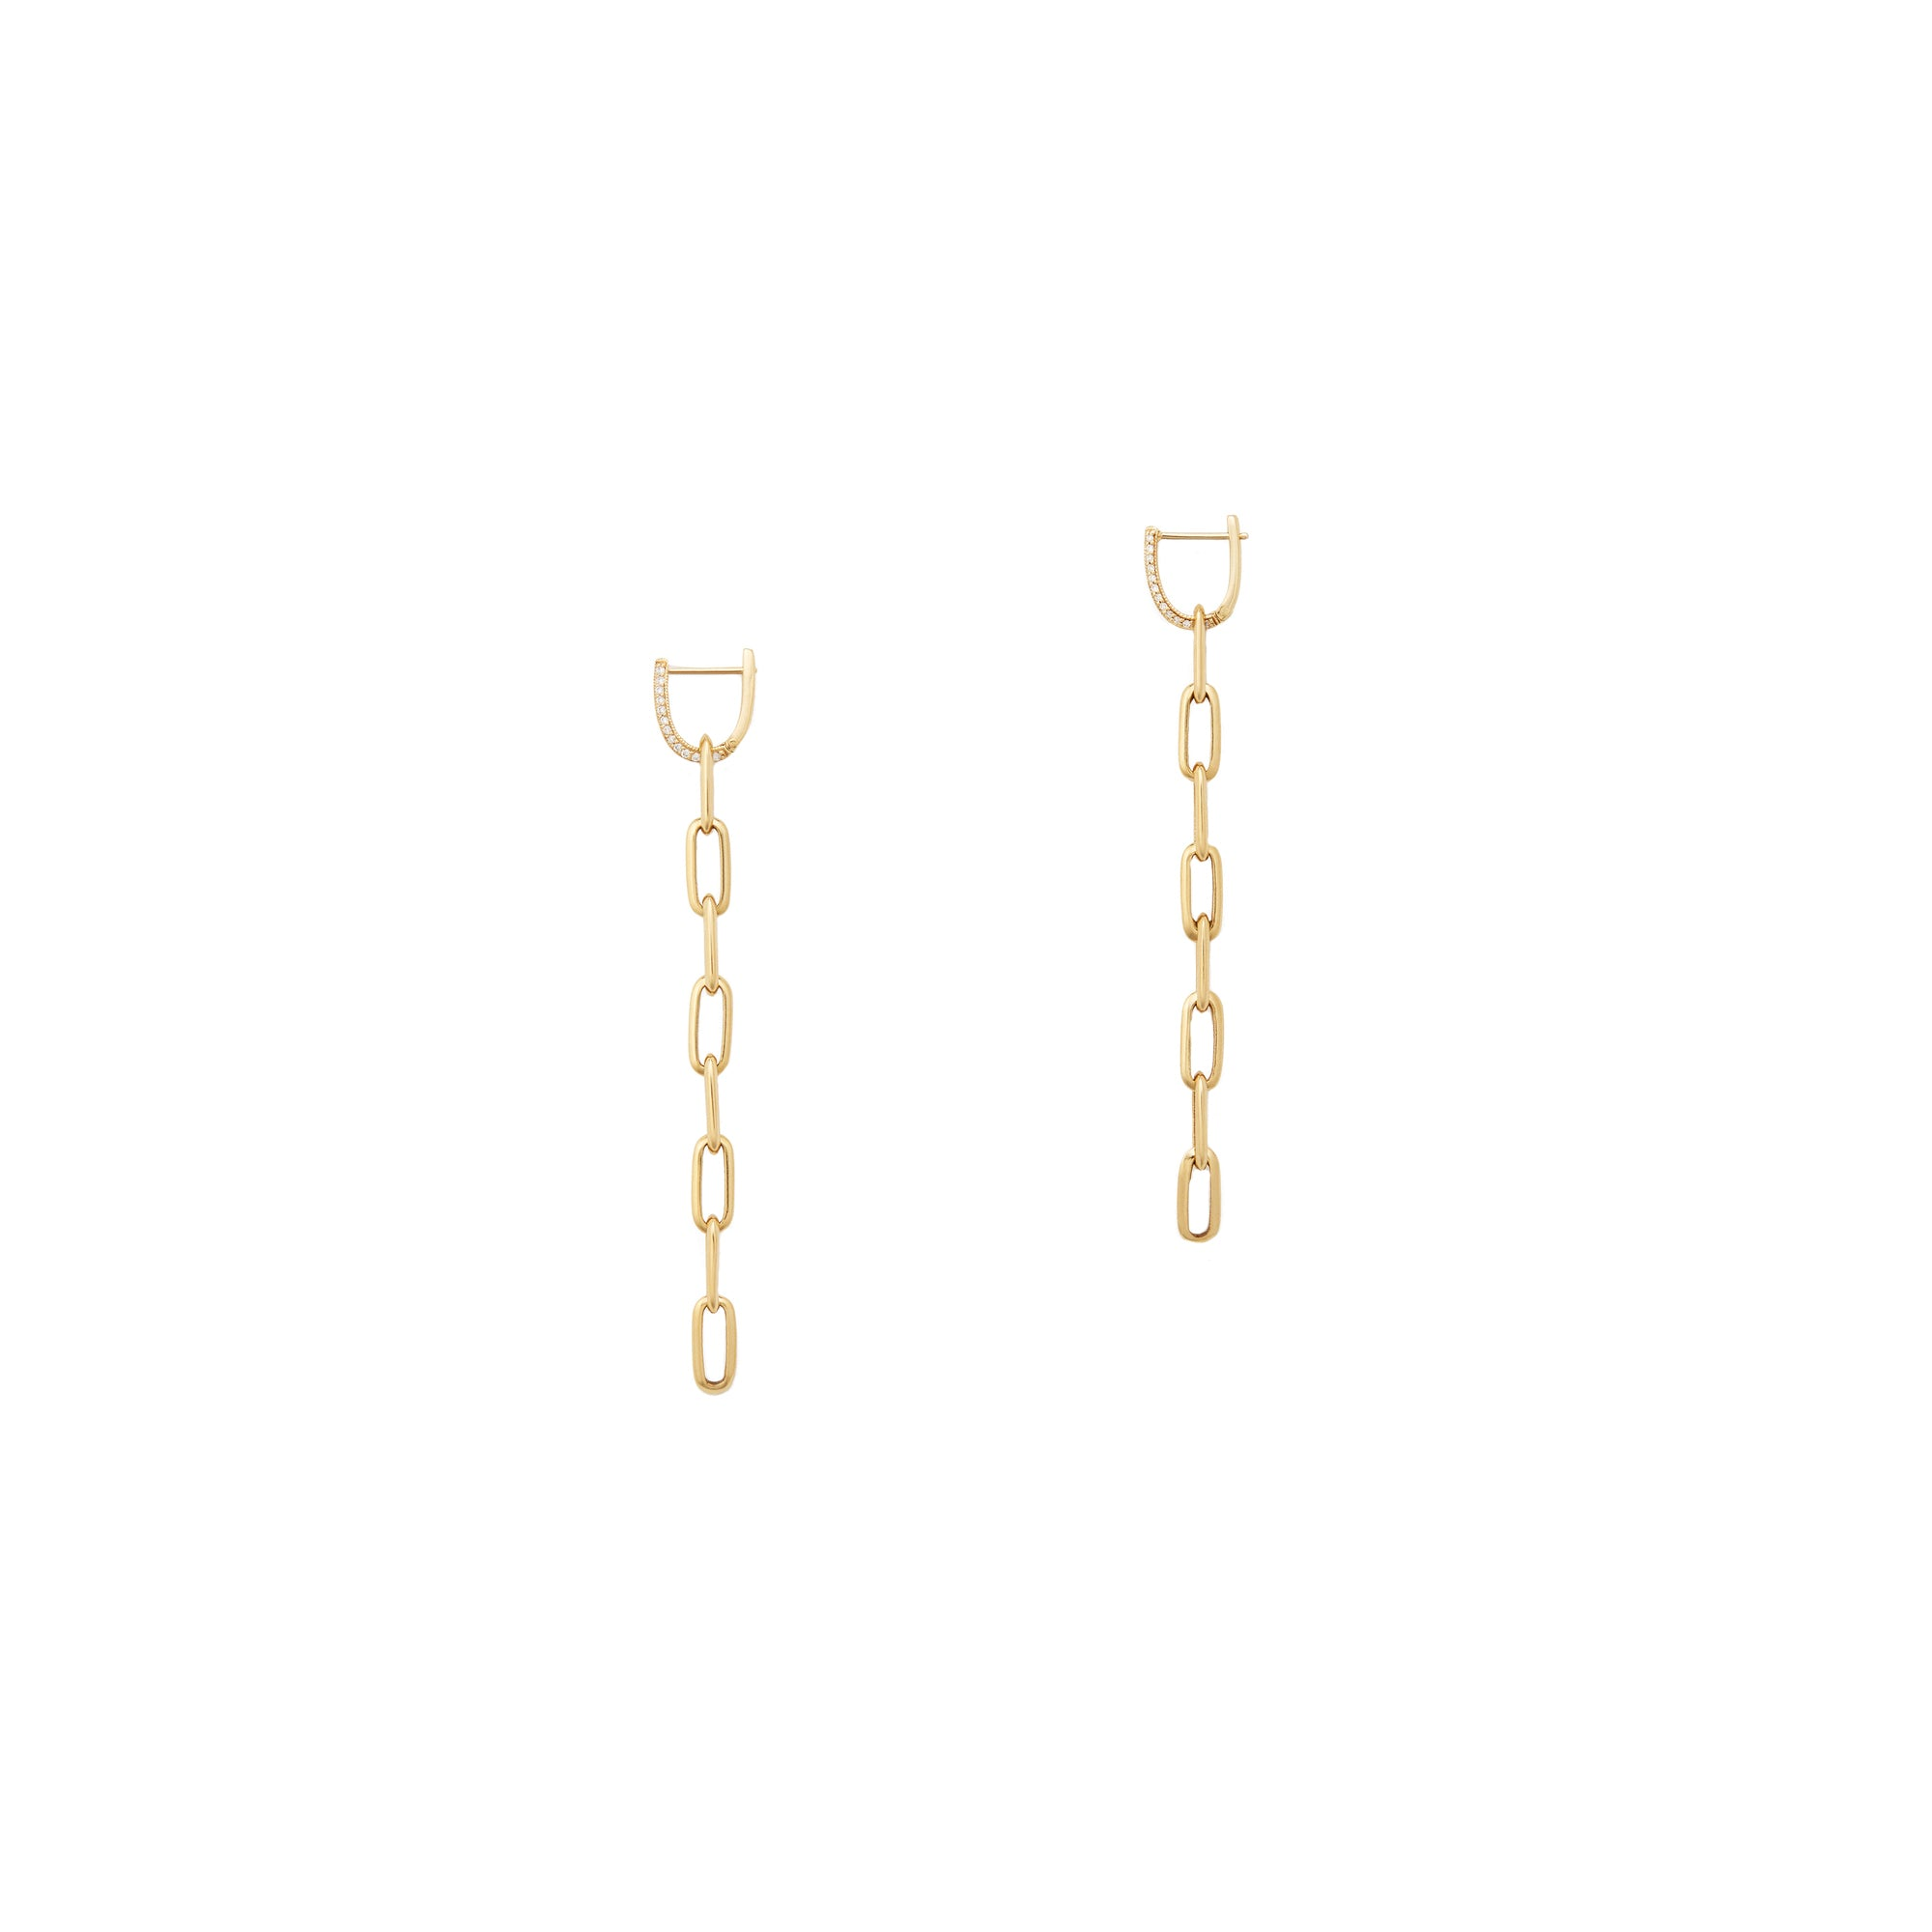 Lizzie Mandler Pave Knife Edge Link Drops - Gold - Earrings - Broken English Jewelry